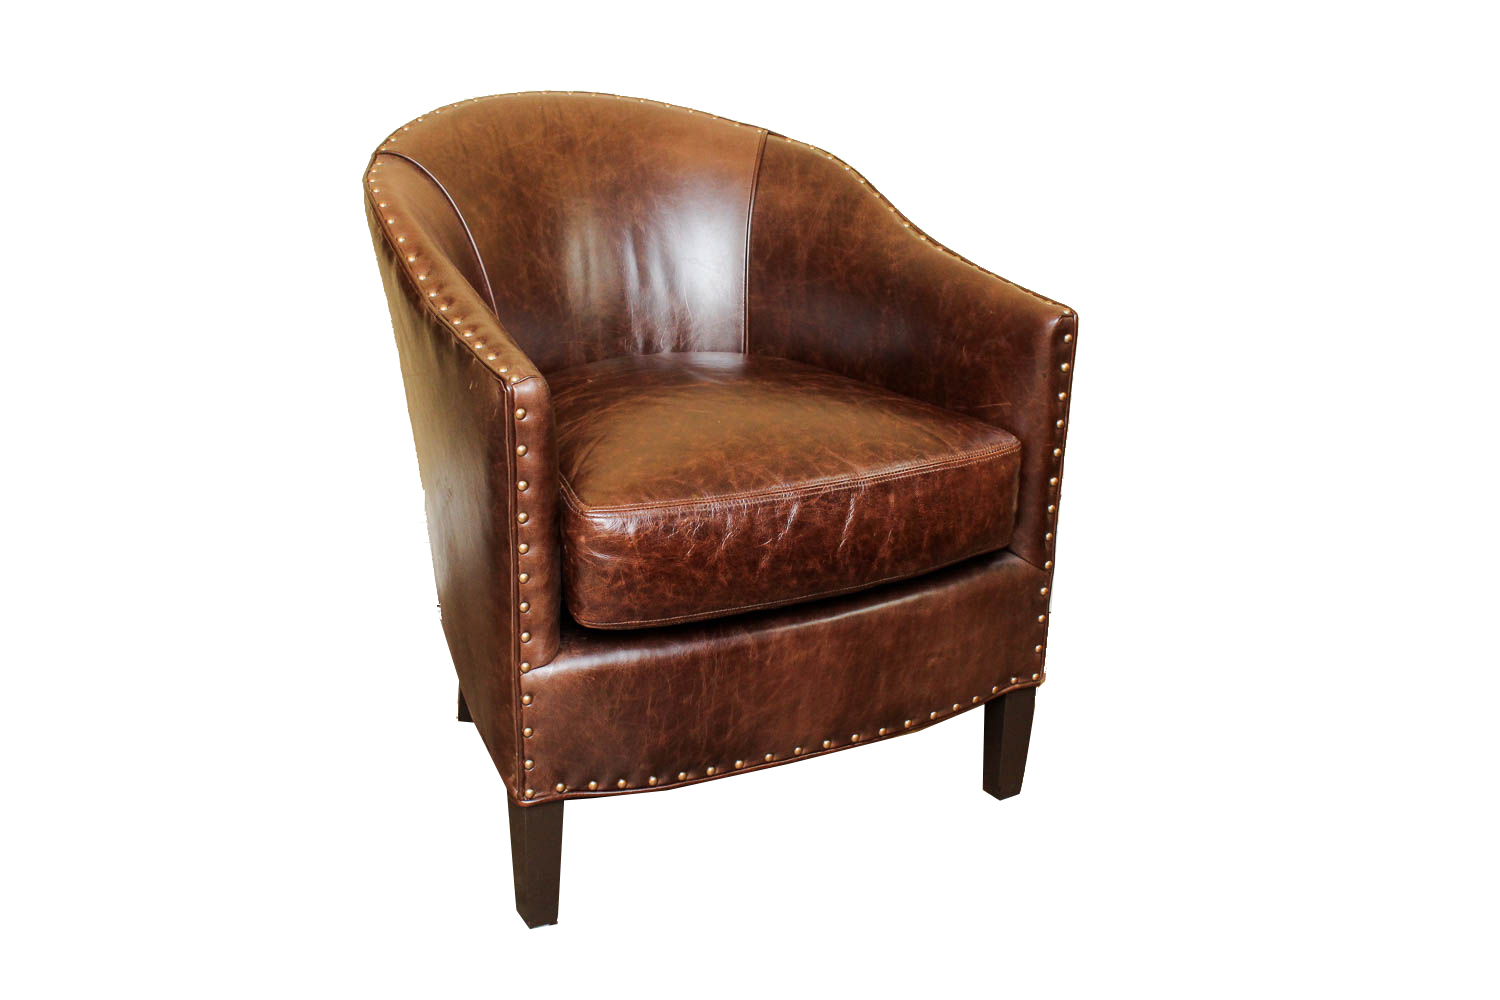 Arhaus u0026quot;Gilesu0026quot; Leather Club Chair : EBTH